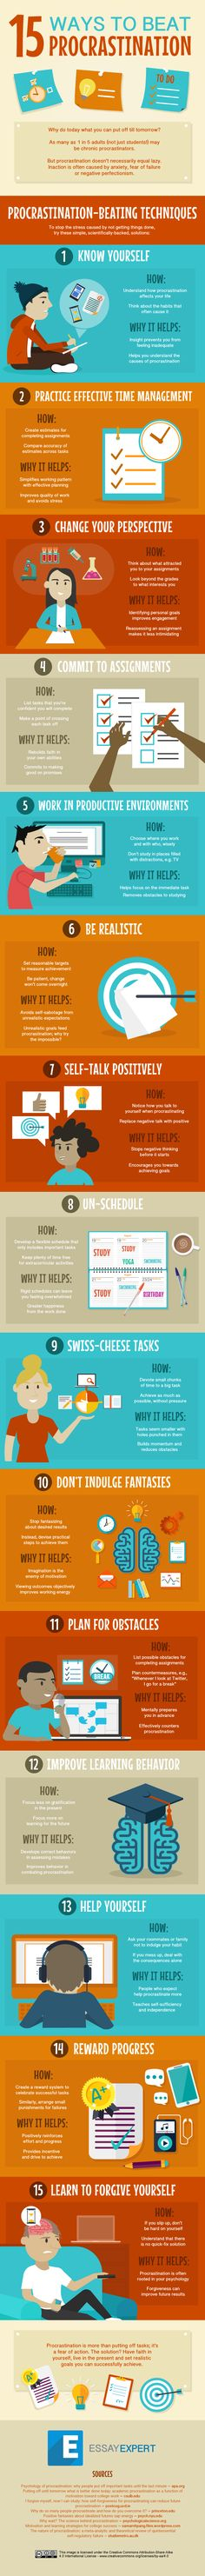 15 Ways to Beat Procrastination #INFOGRAPHIC